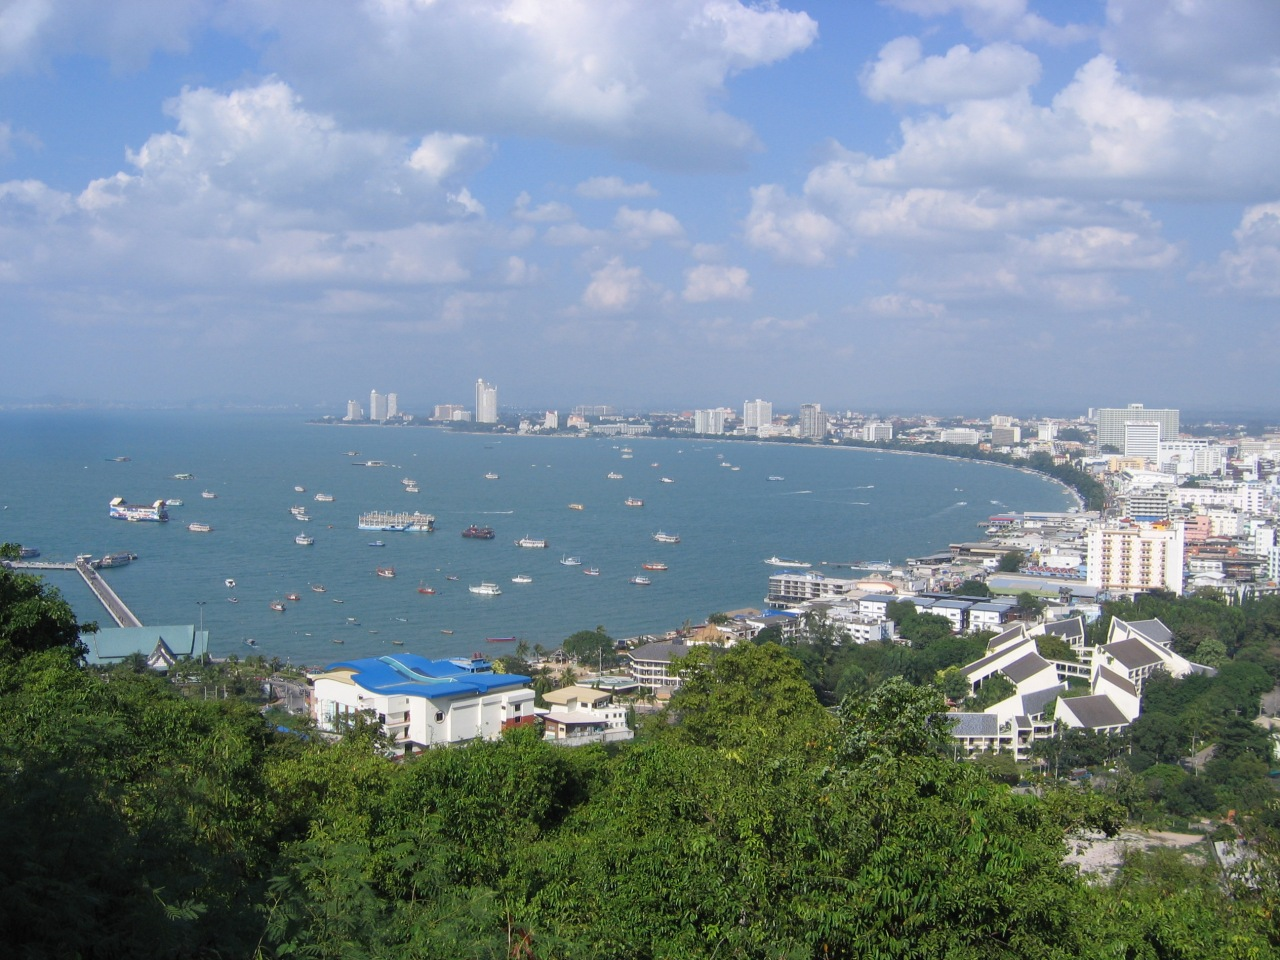 A Kai Tak Convention picture of Pattaya.